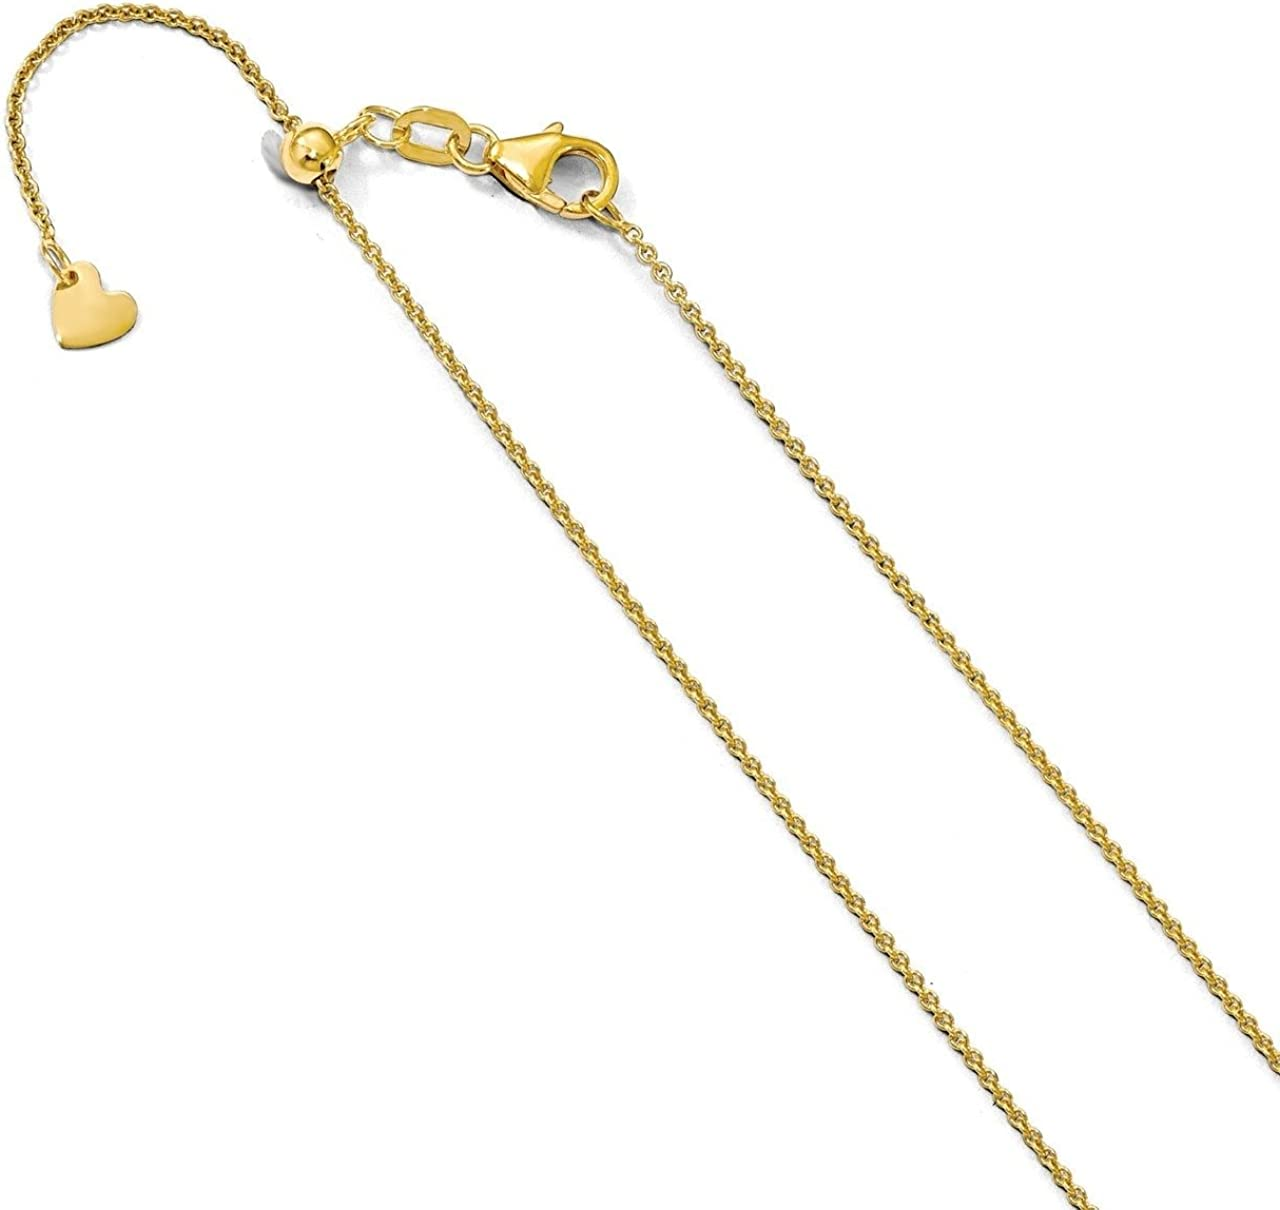 Lex /& Lu Leslies 14k Yellow Gold Round Cable Chain Necklace Adjustable LAL91992